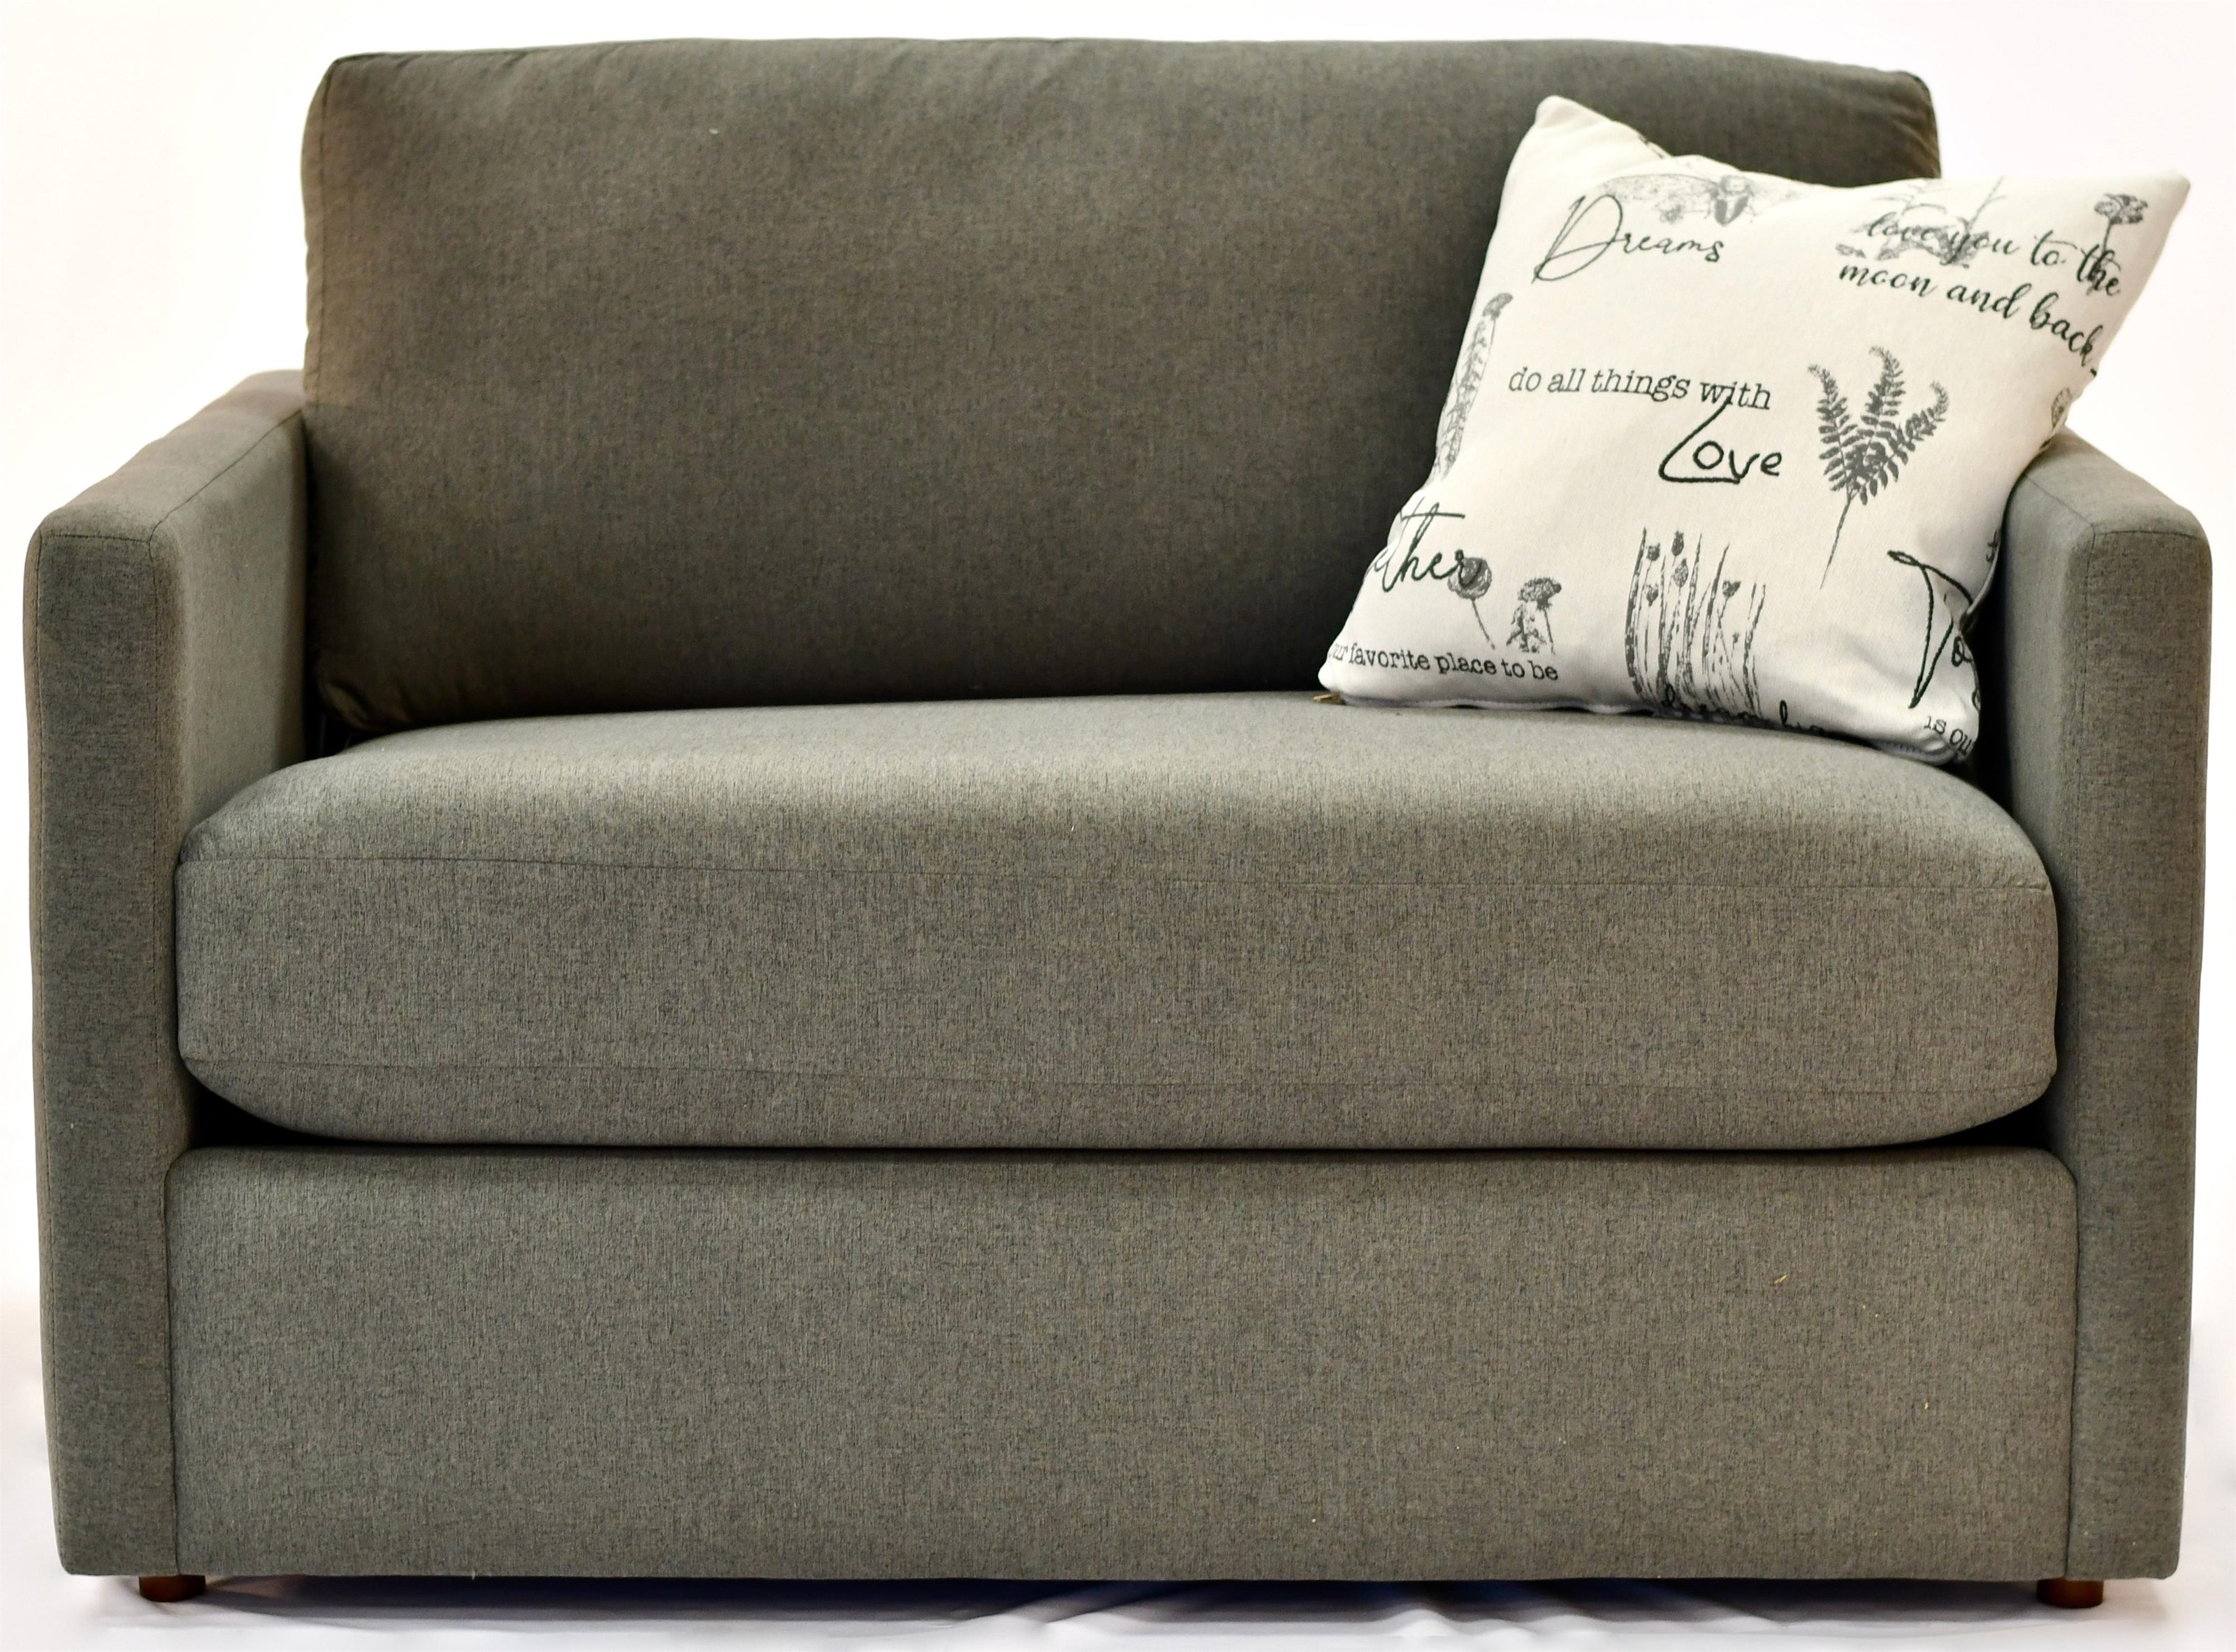 Tess Loveseat Twin Sleeper by Taelor Designs at Bennett's Furniture and Mattresses